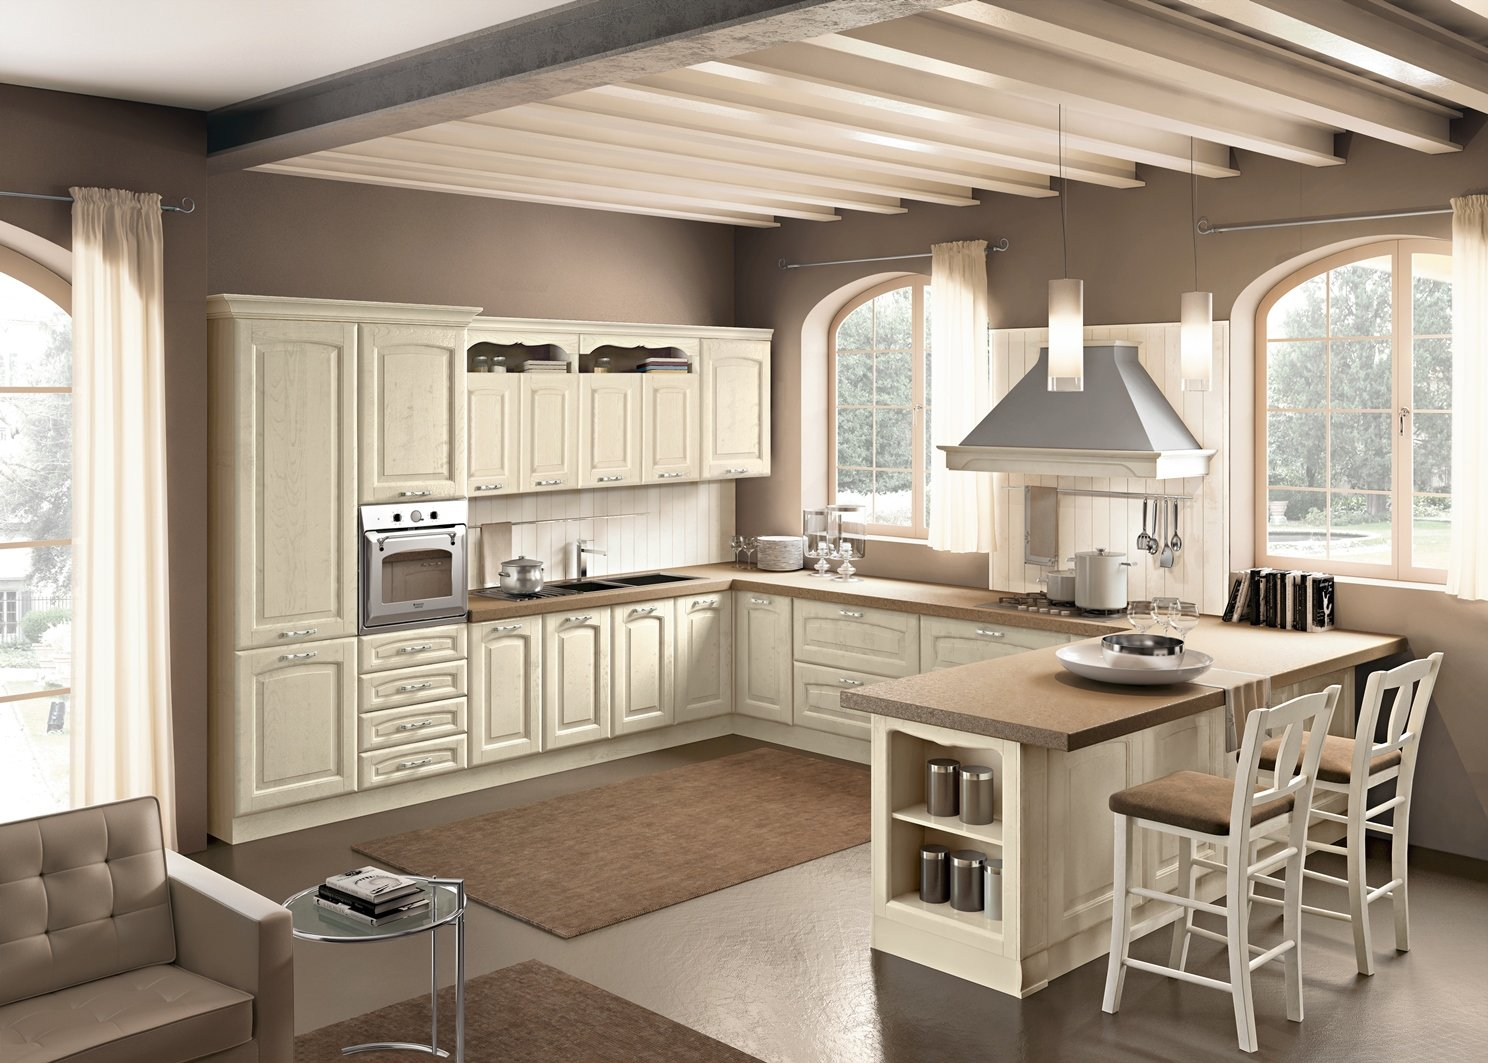 Best Cucina Lucrezia Mondo Convenienza Images - Ideas & Design ...